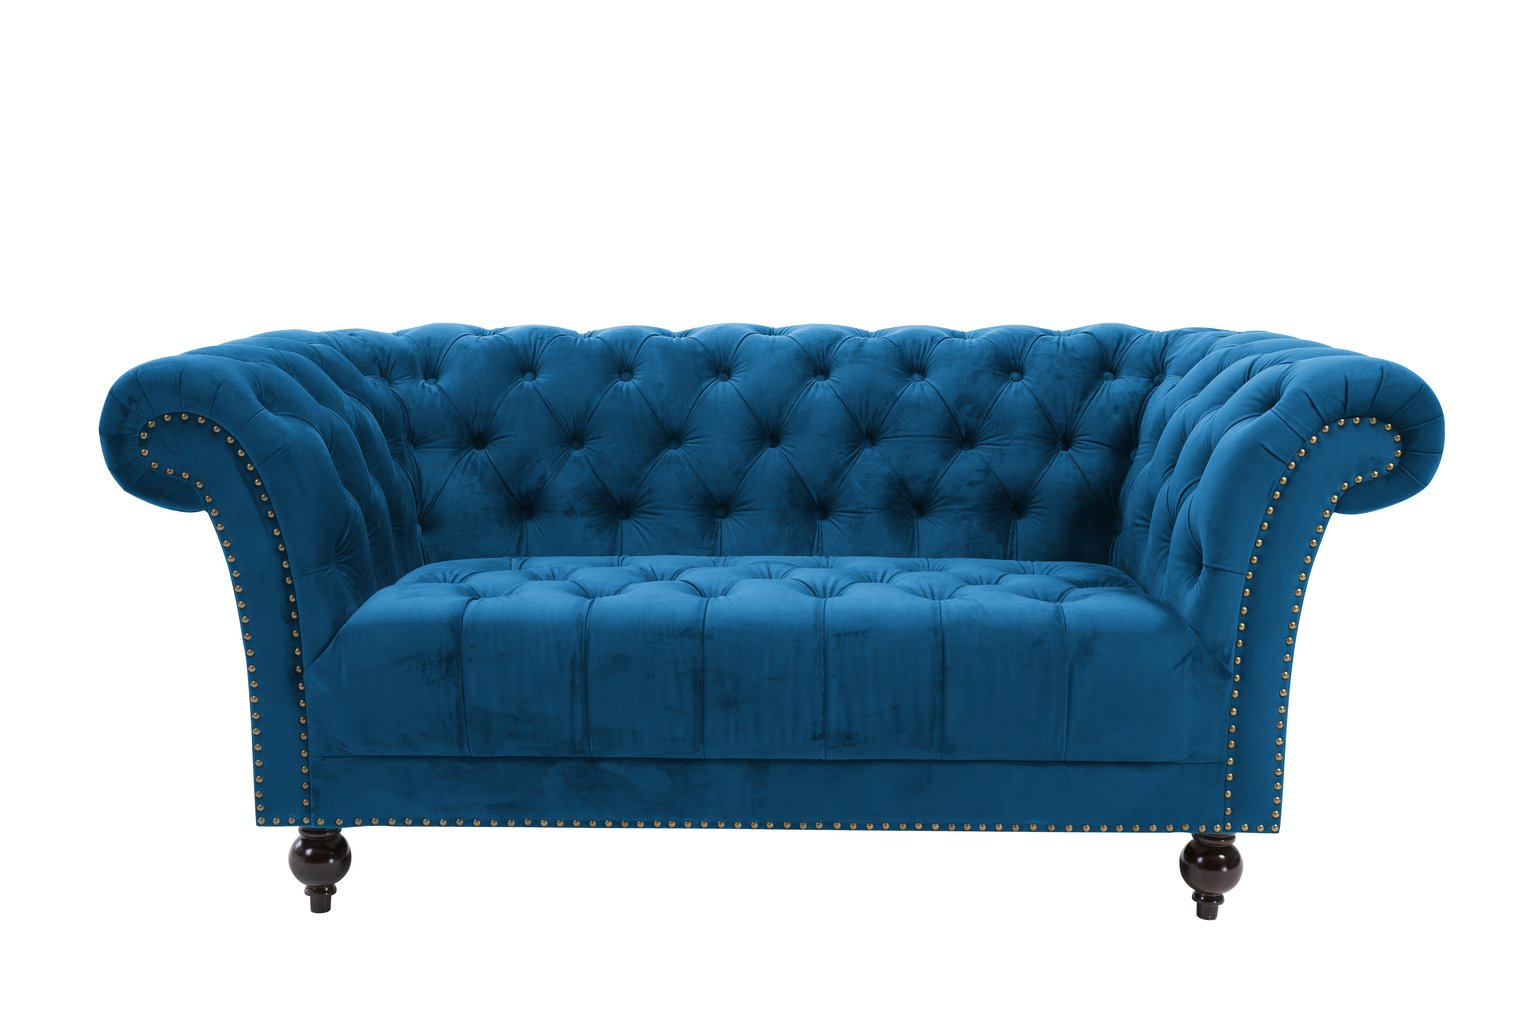 Birlea Chester 2 Seater Fabric Sofa - Blue